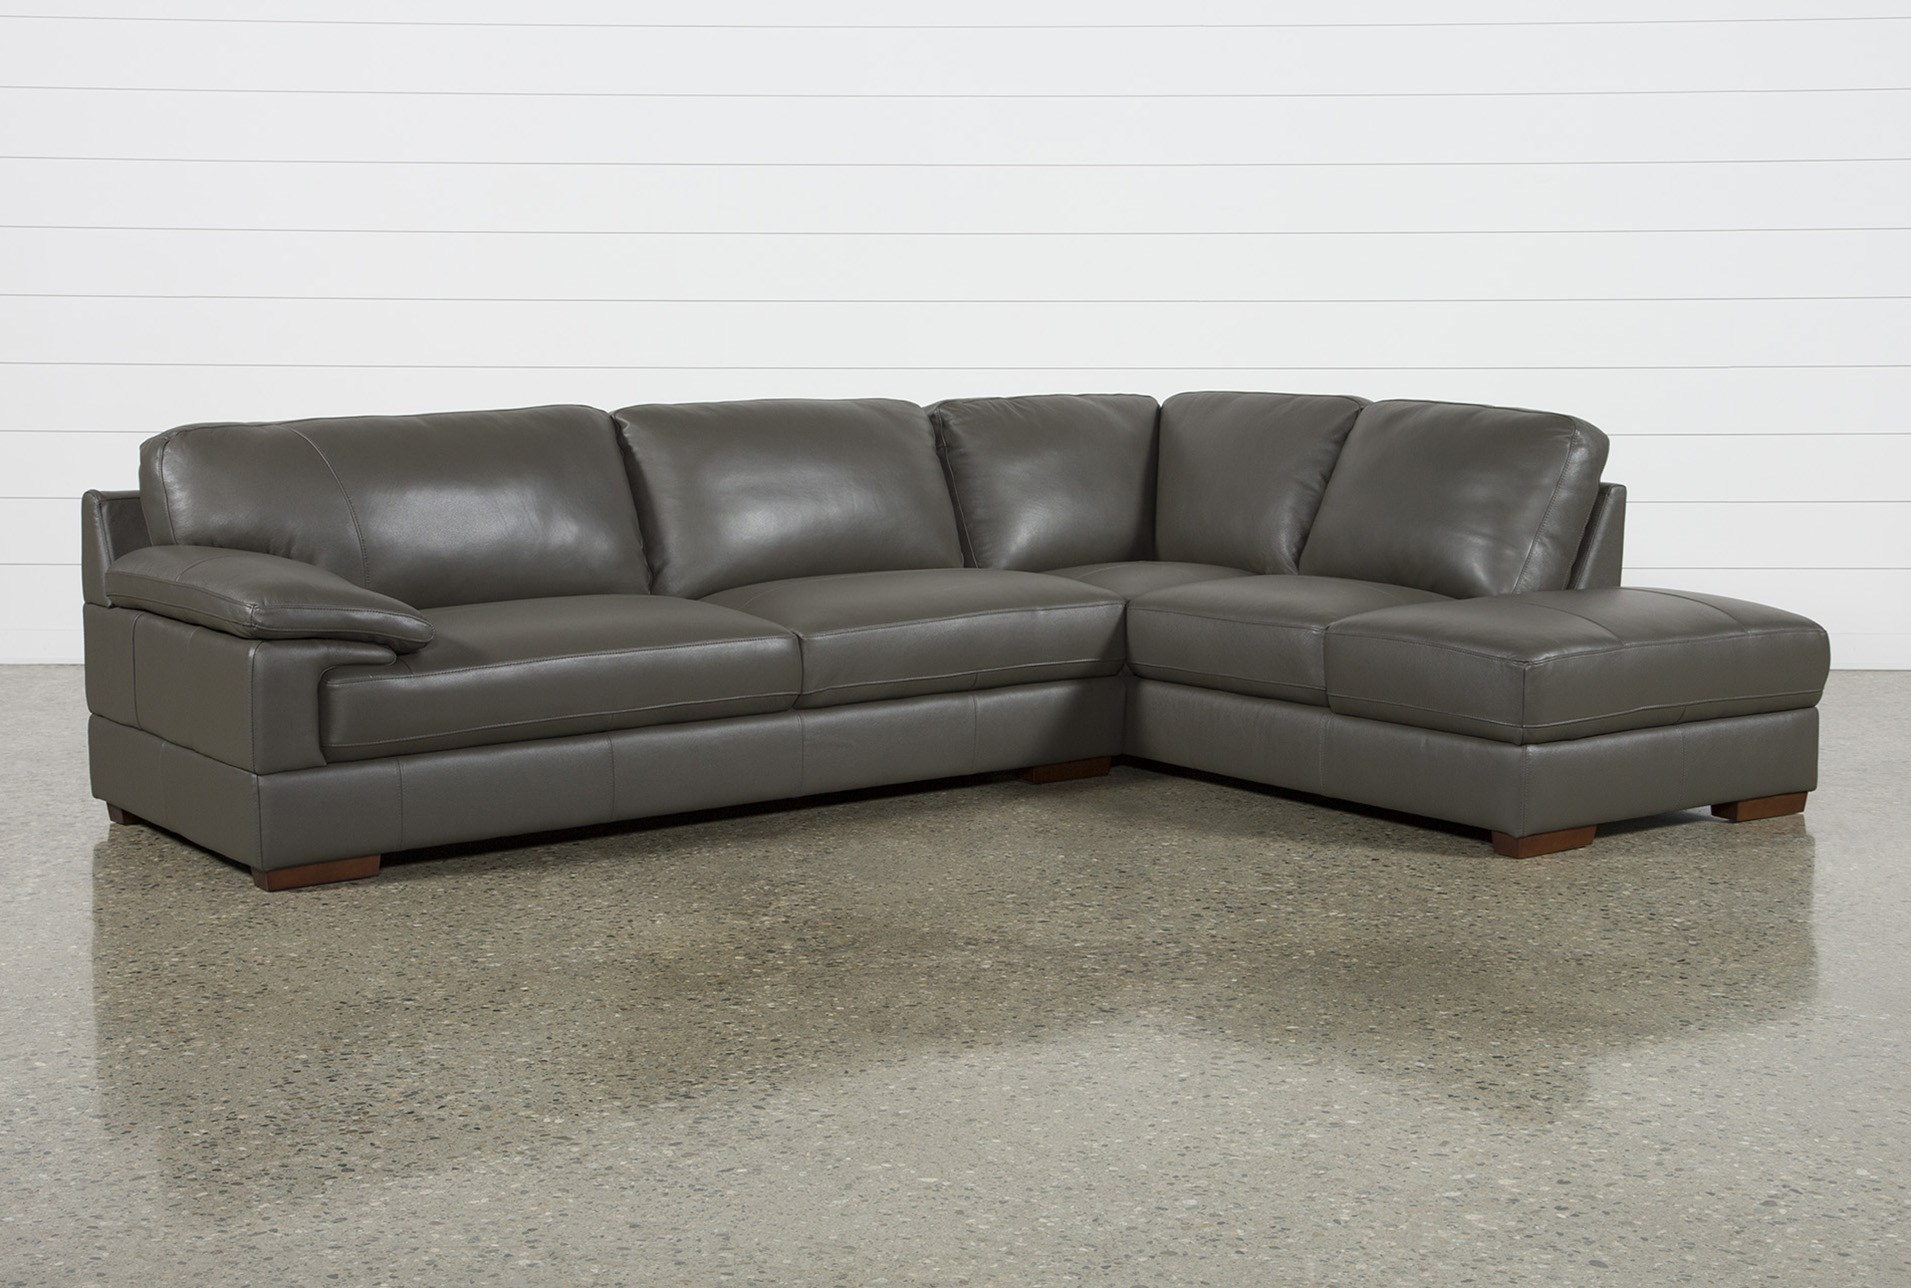 Excellent Nico Dark Grey Leather Sectional With Right Arm Facing Armless Storage Chaise Forskolin Free Trial Chair Design Images Forskolin Free Trialorg